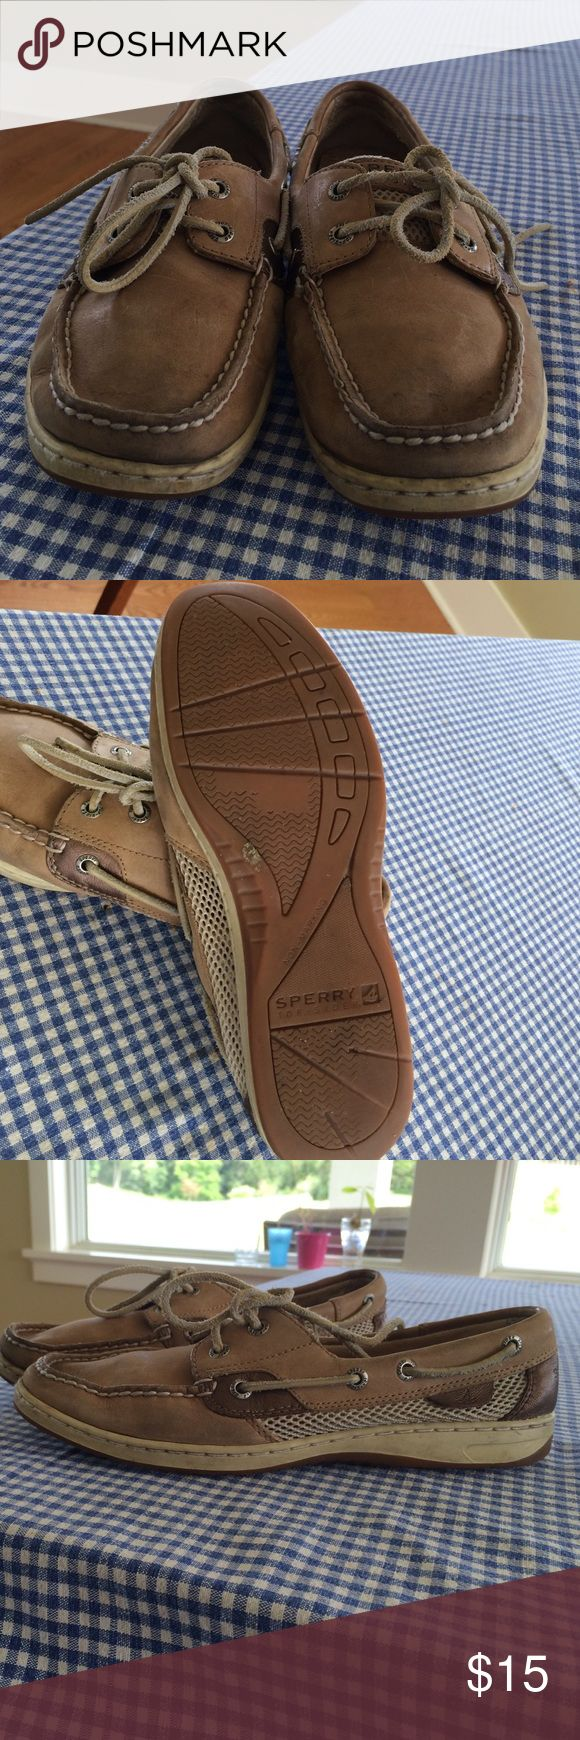 Sperry Top-Siders Size 8.5 Adorable and classic gently worn Sperry Top-Siders! Mesh sides for breathability and comfort. Already broken in but with lots of life left! Sperry Top-Sider Shoes